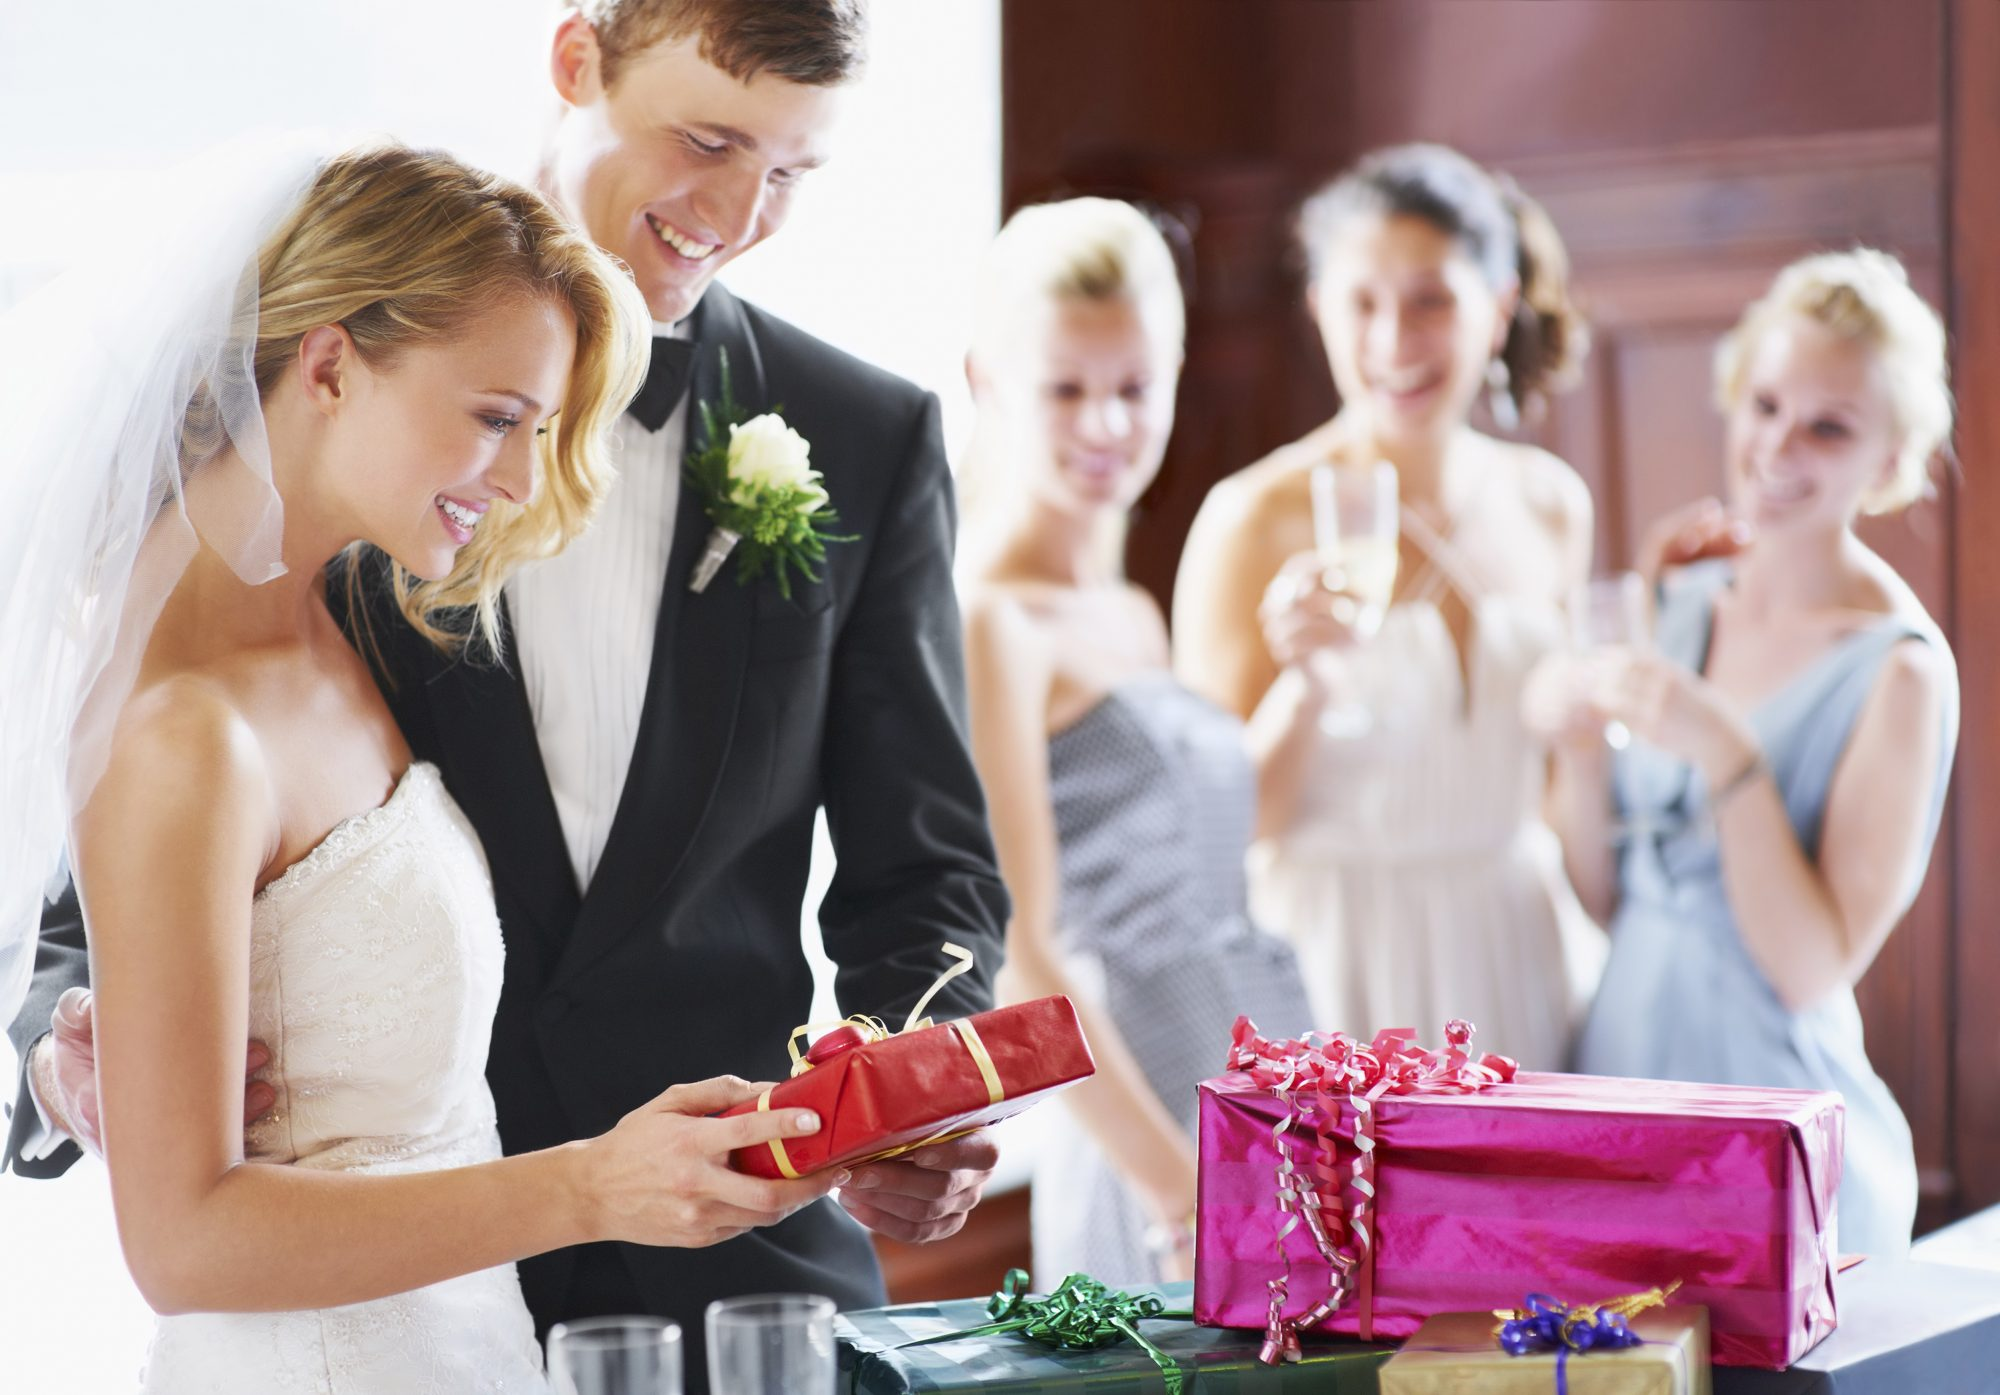 Couple Wedding Registry Regrets